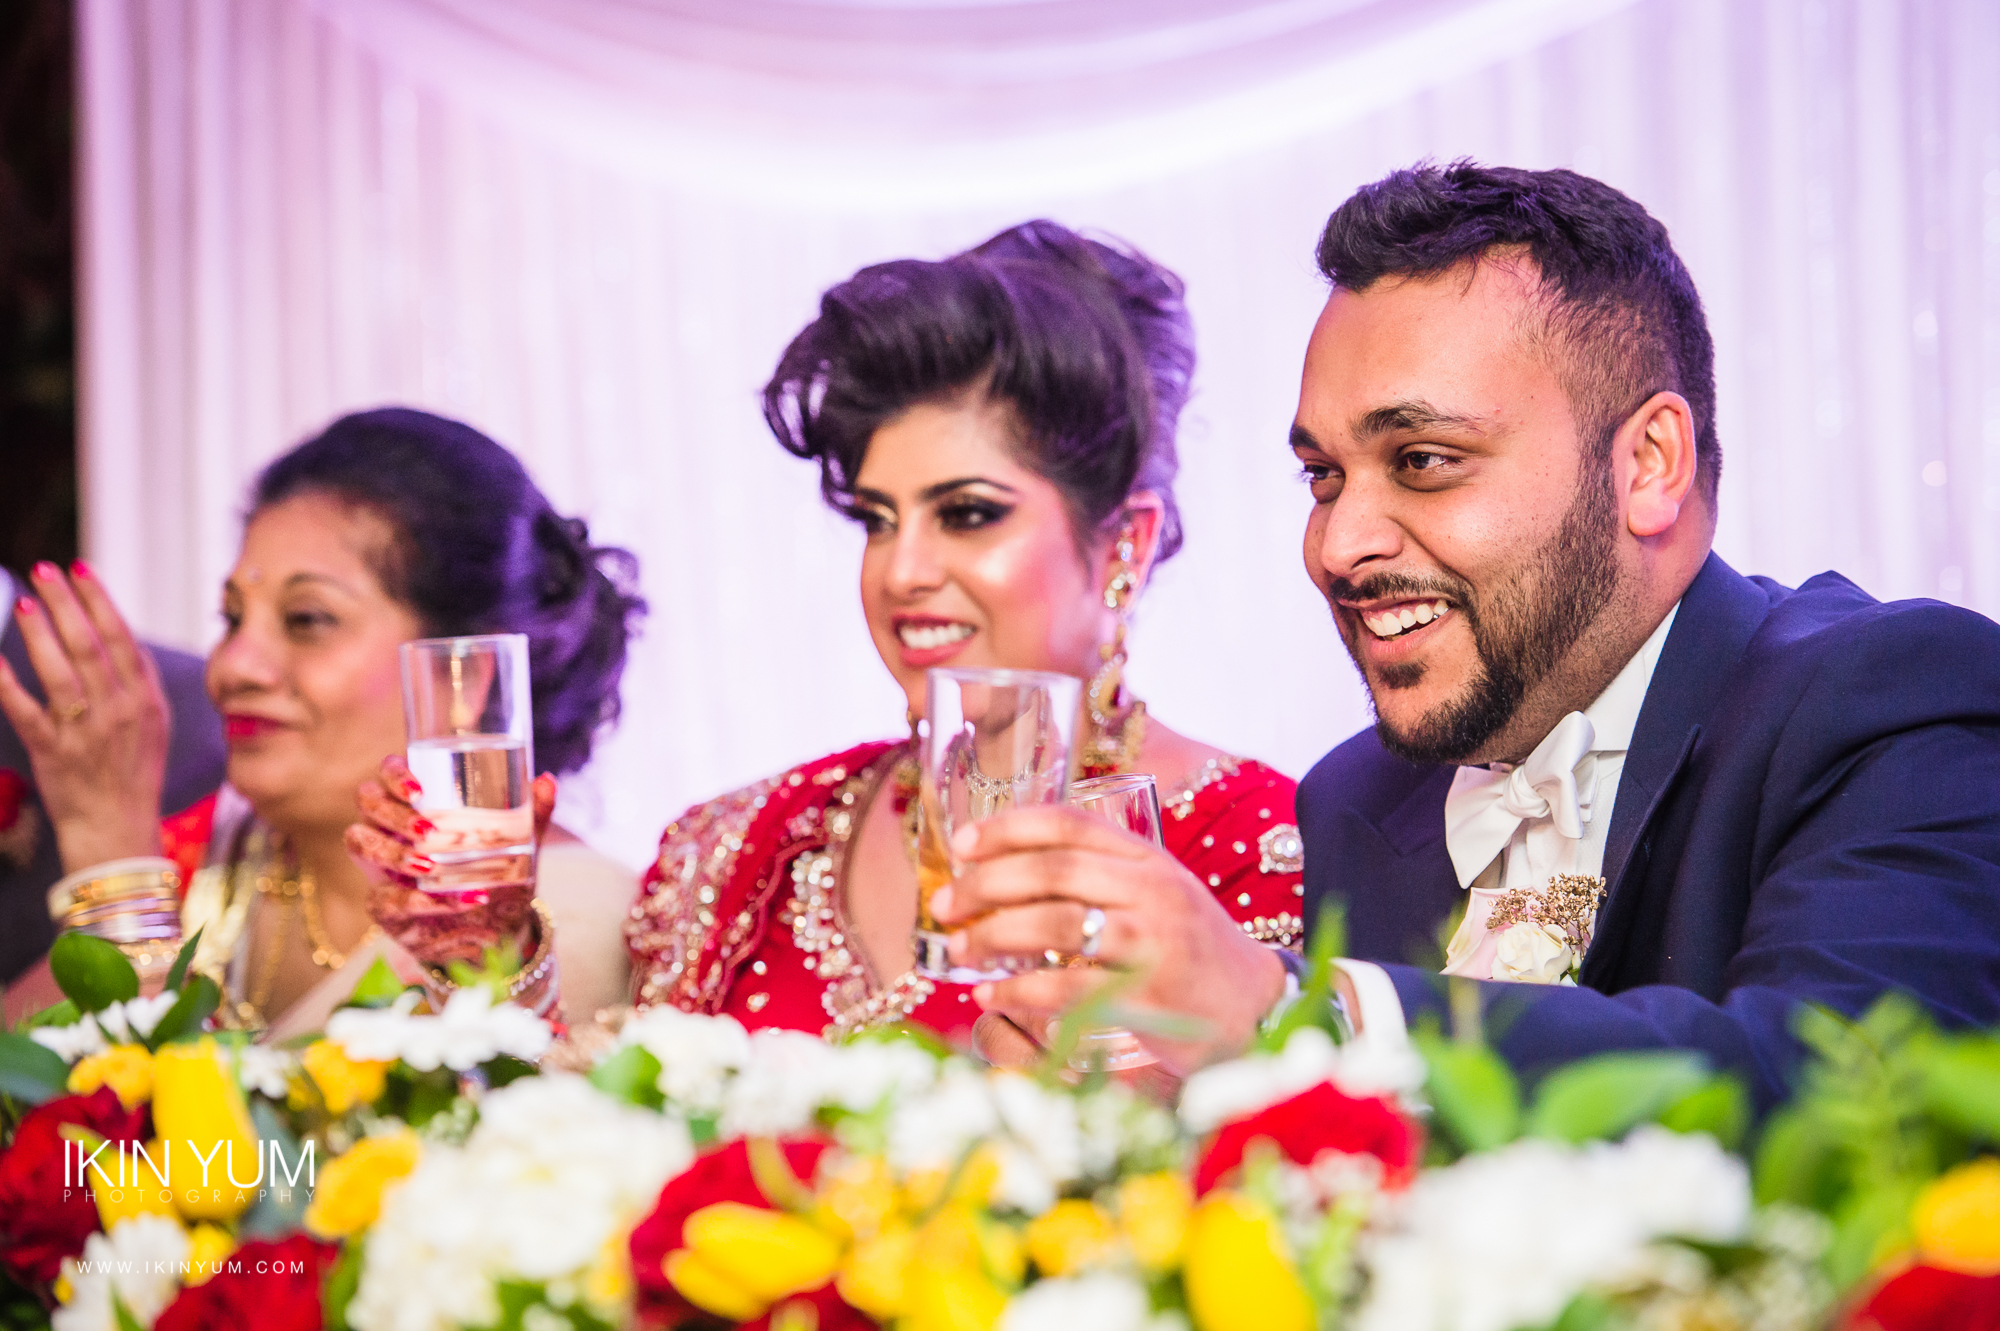 Northbrook Park Wedding - Ikin Yum Photography-0142.jpg